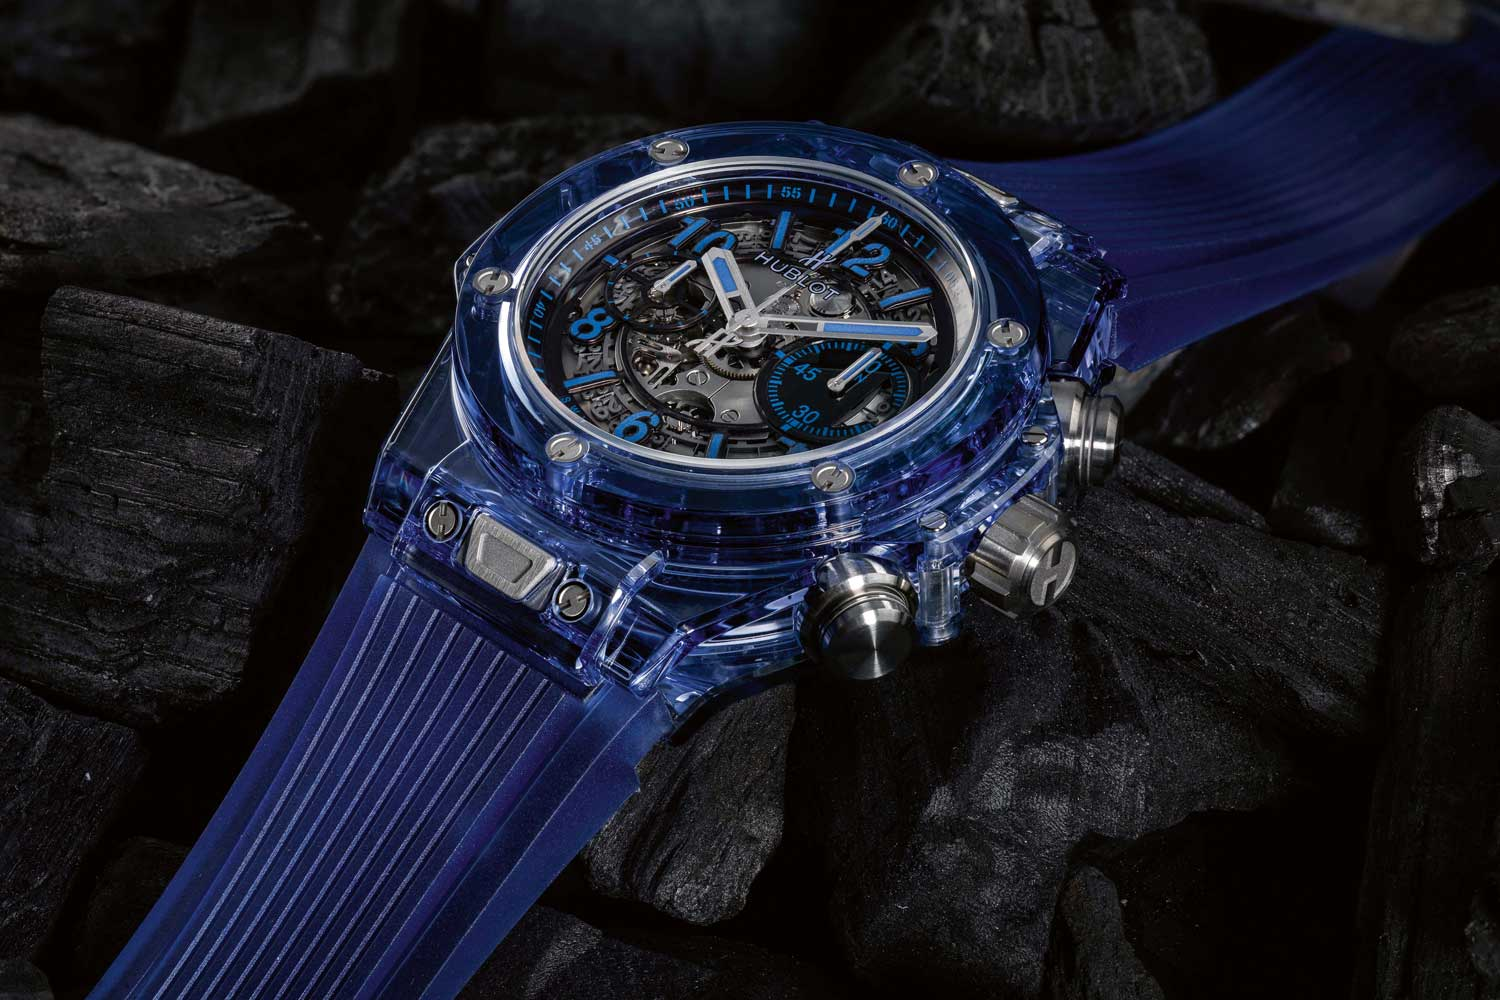 Coloured sapphire crystal is the latest success at Hublot, with blue sapphire shown here on the Big Bang Unico